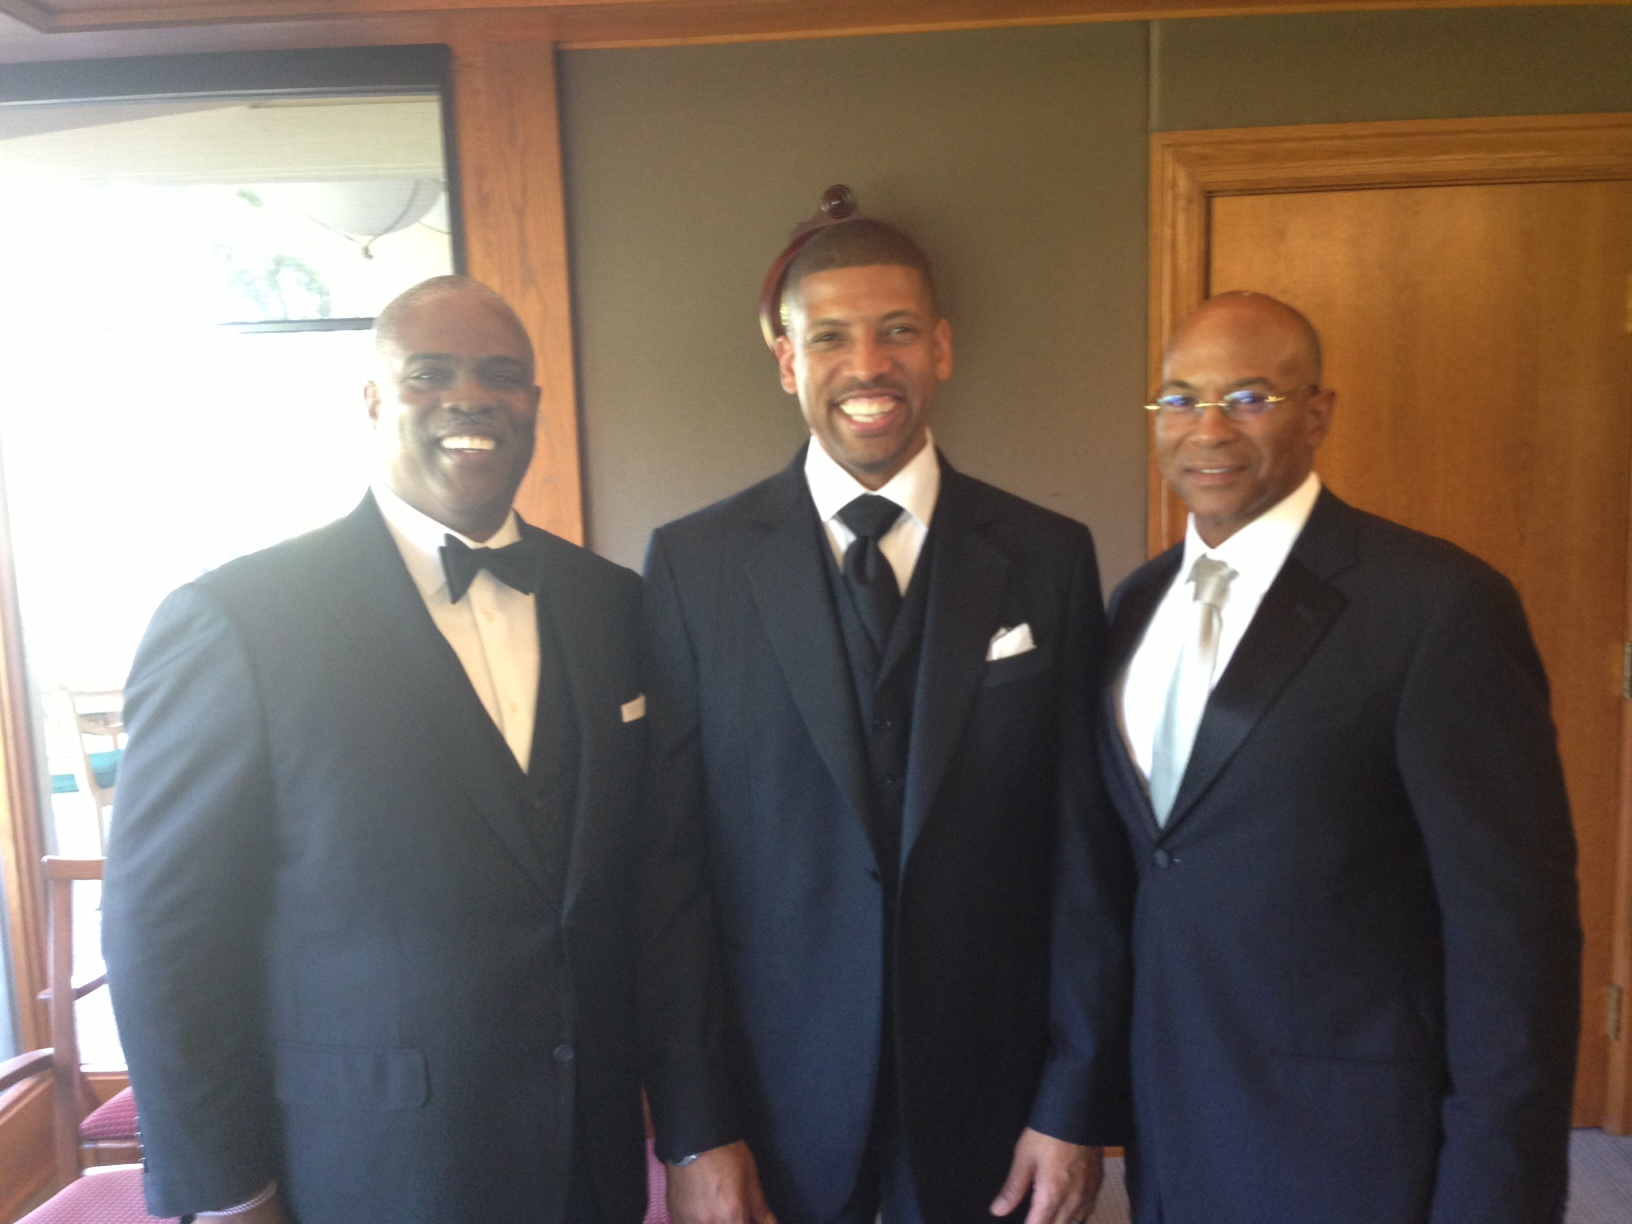 Professor Mark T. Harris, Esq. with The Honorable Mayor Kevin Johnson of Sacramento and Councilman Allen W. Warren